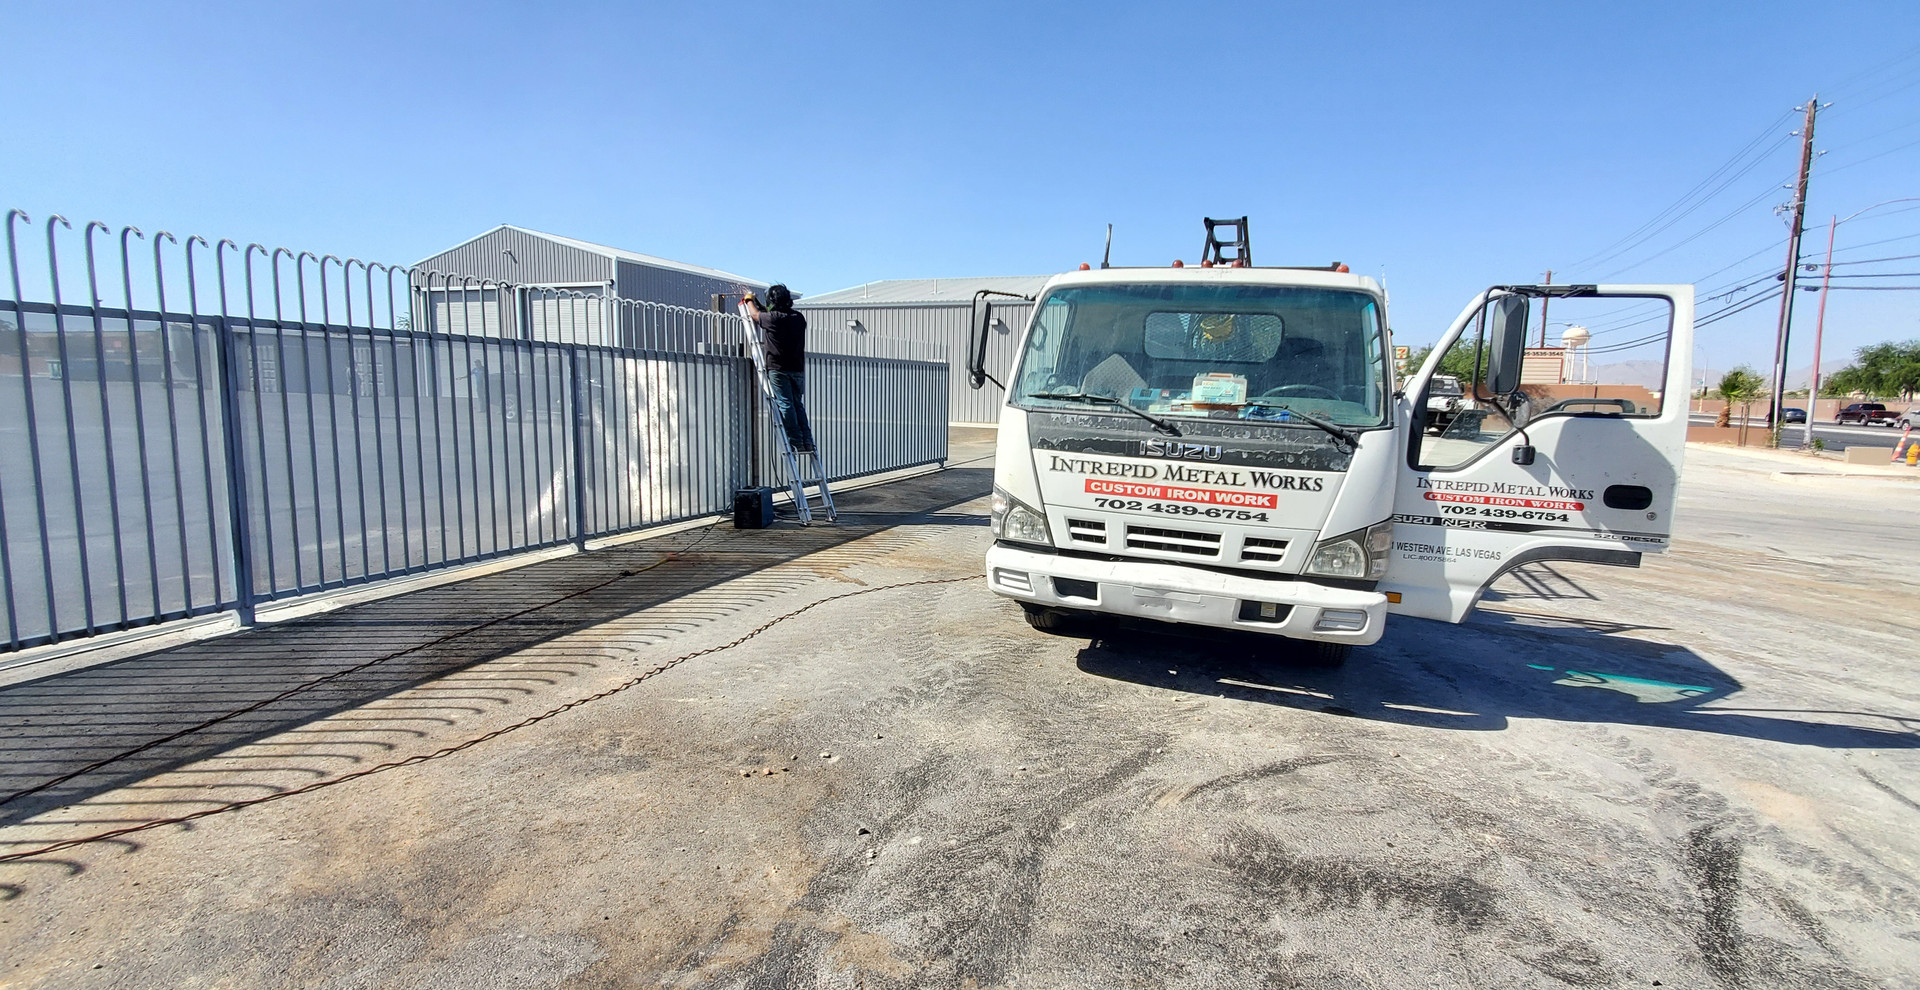 Commercial Tall High Security Fences Las Vegas - Intrepid Metal Works Inc.